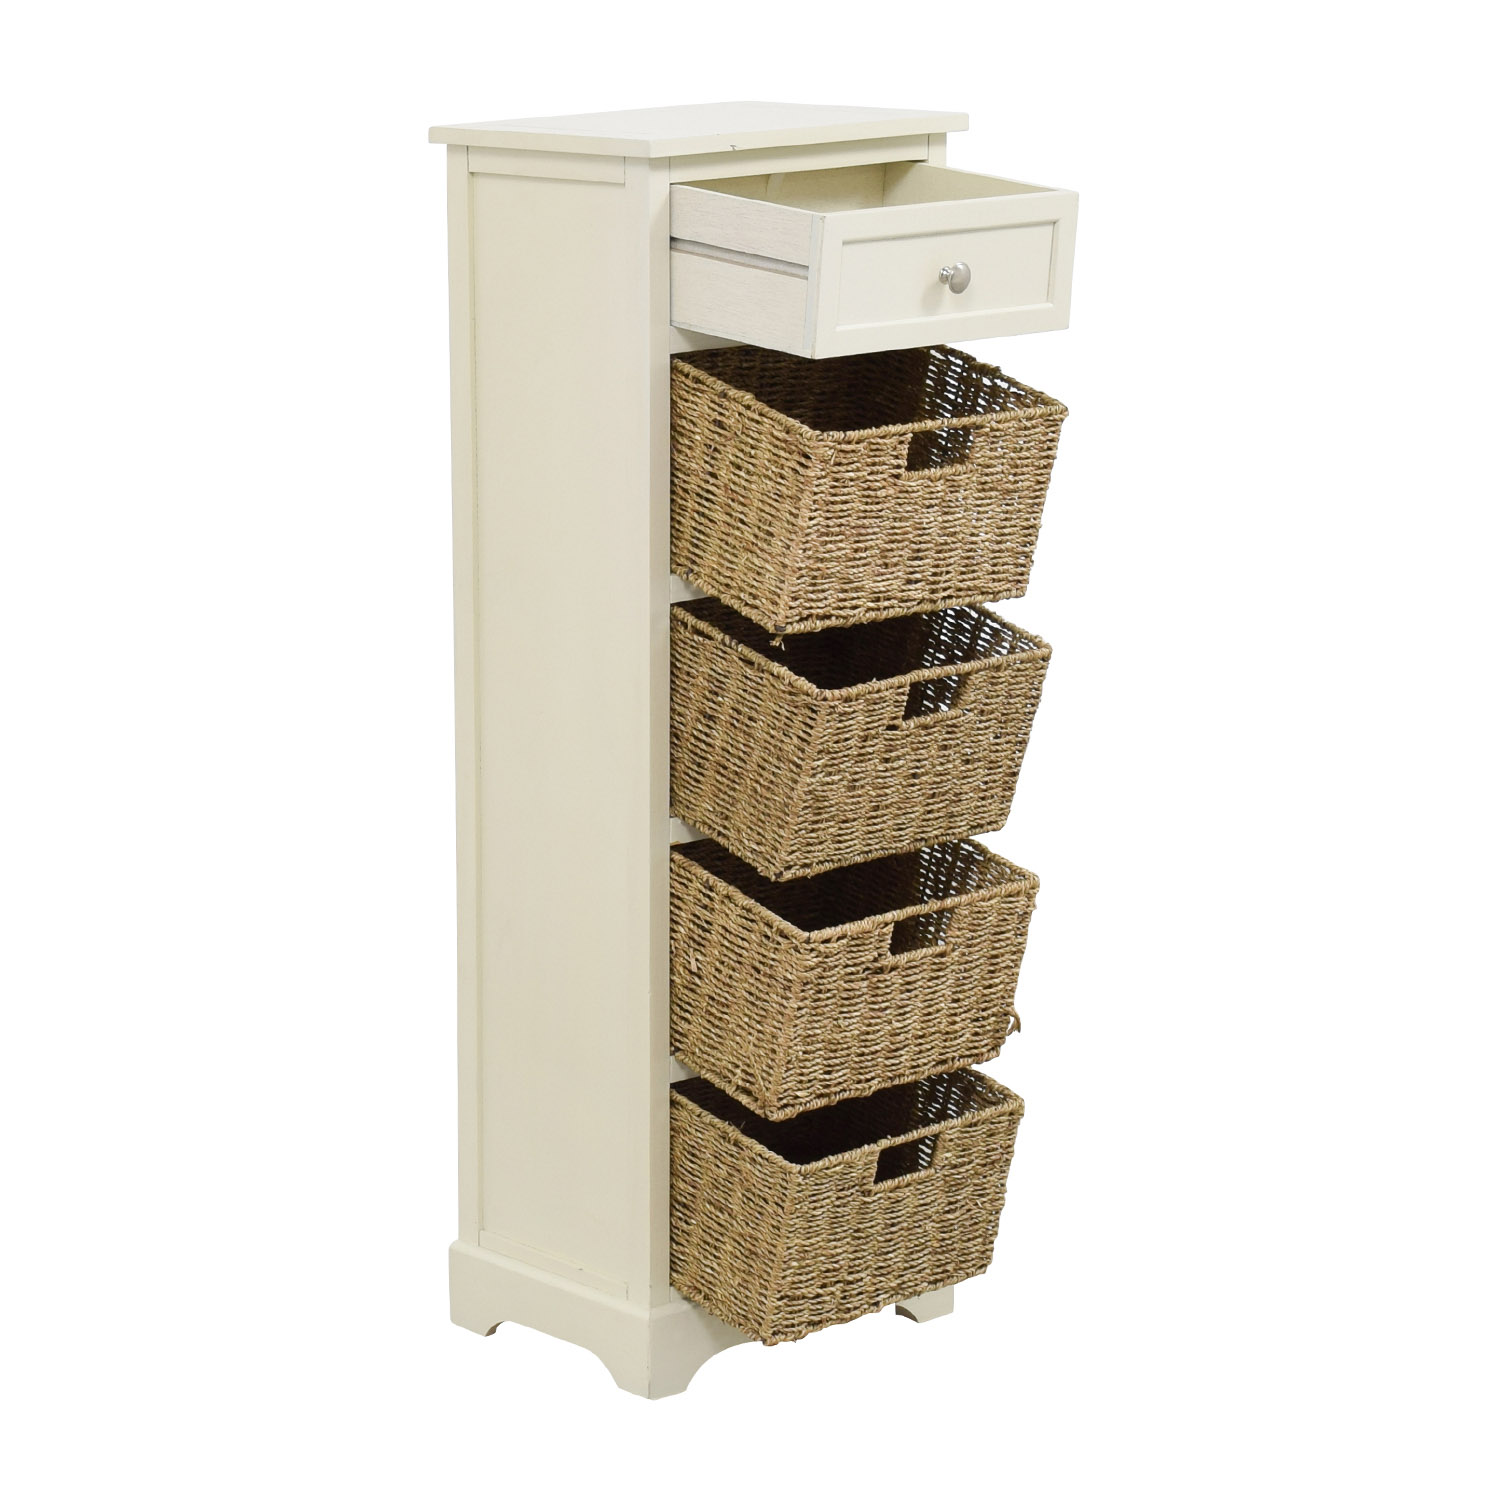 Tall shelf with wicker baskets : Off tall white storage unit with drawer and wicker